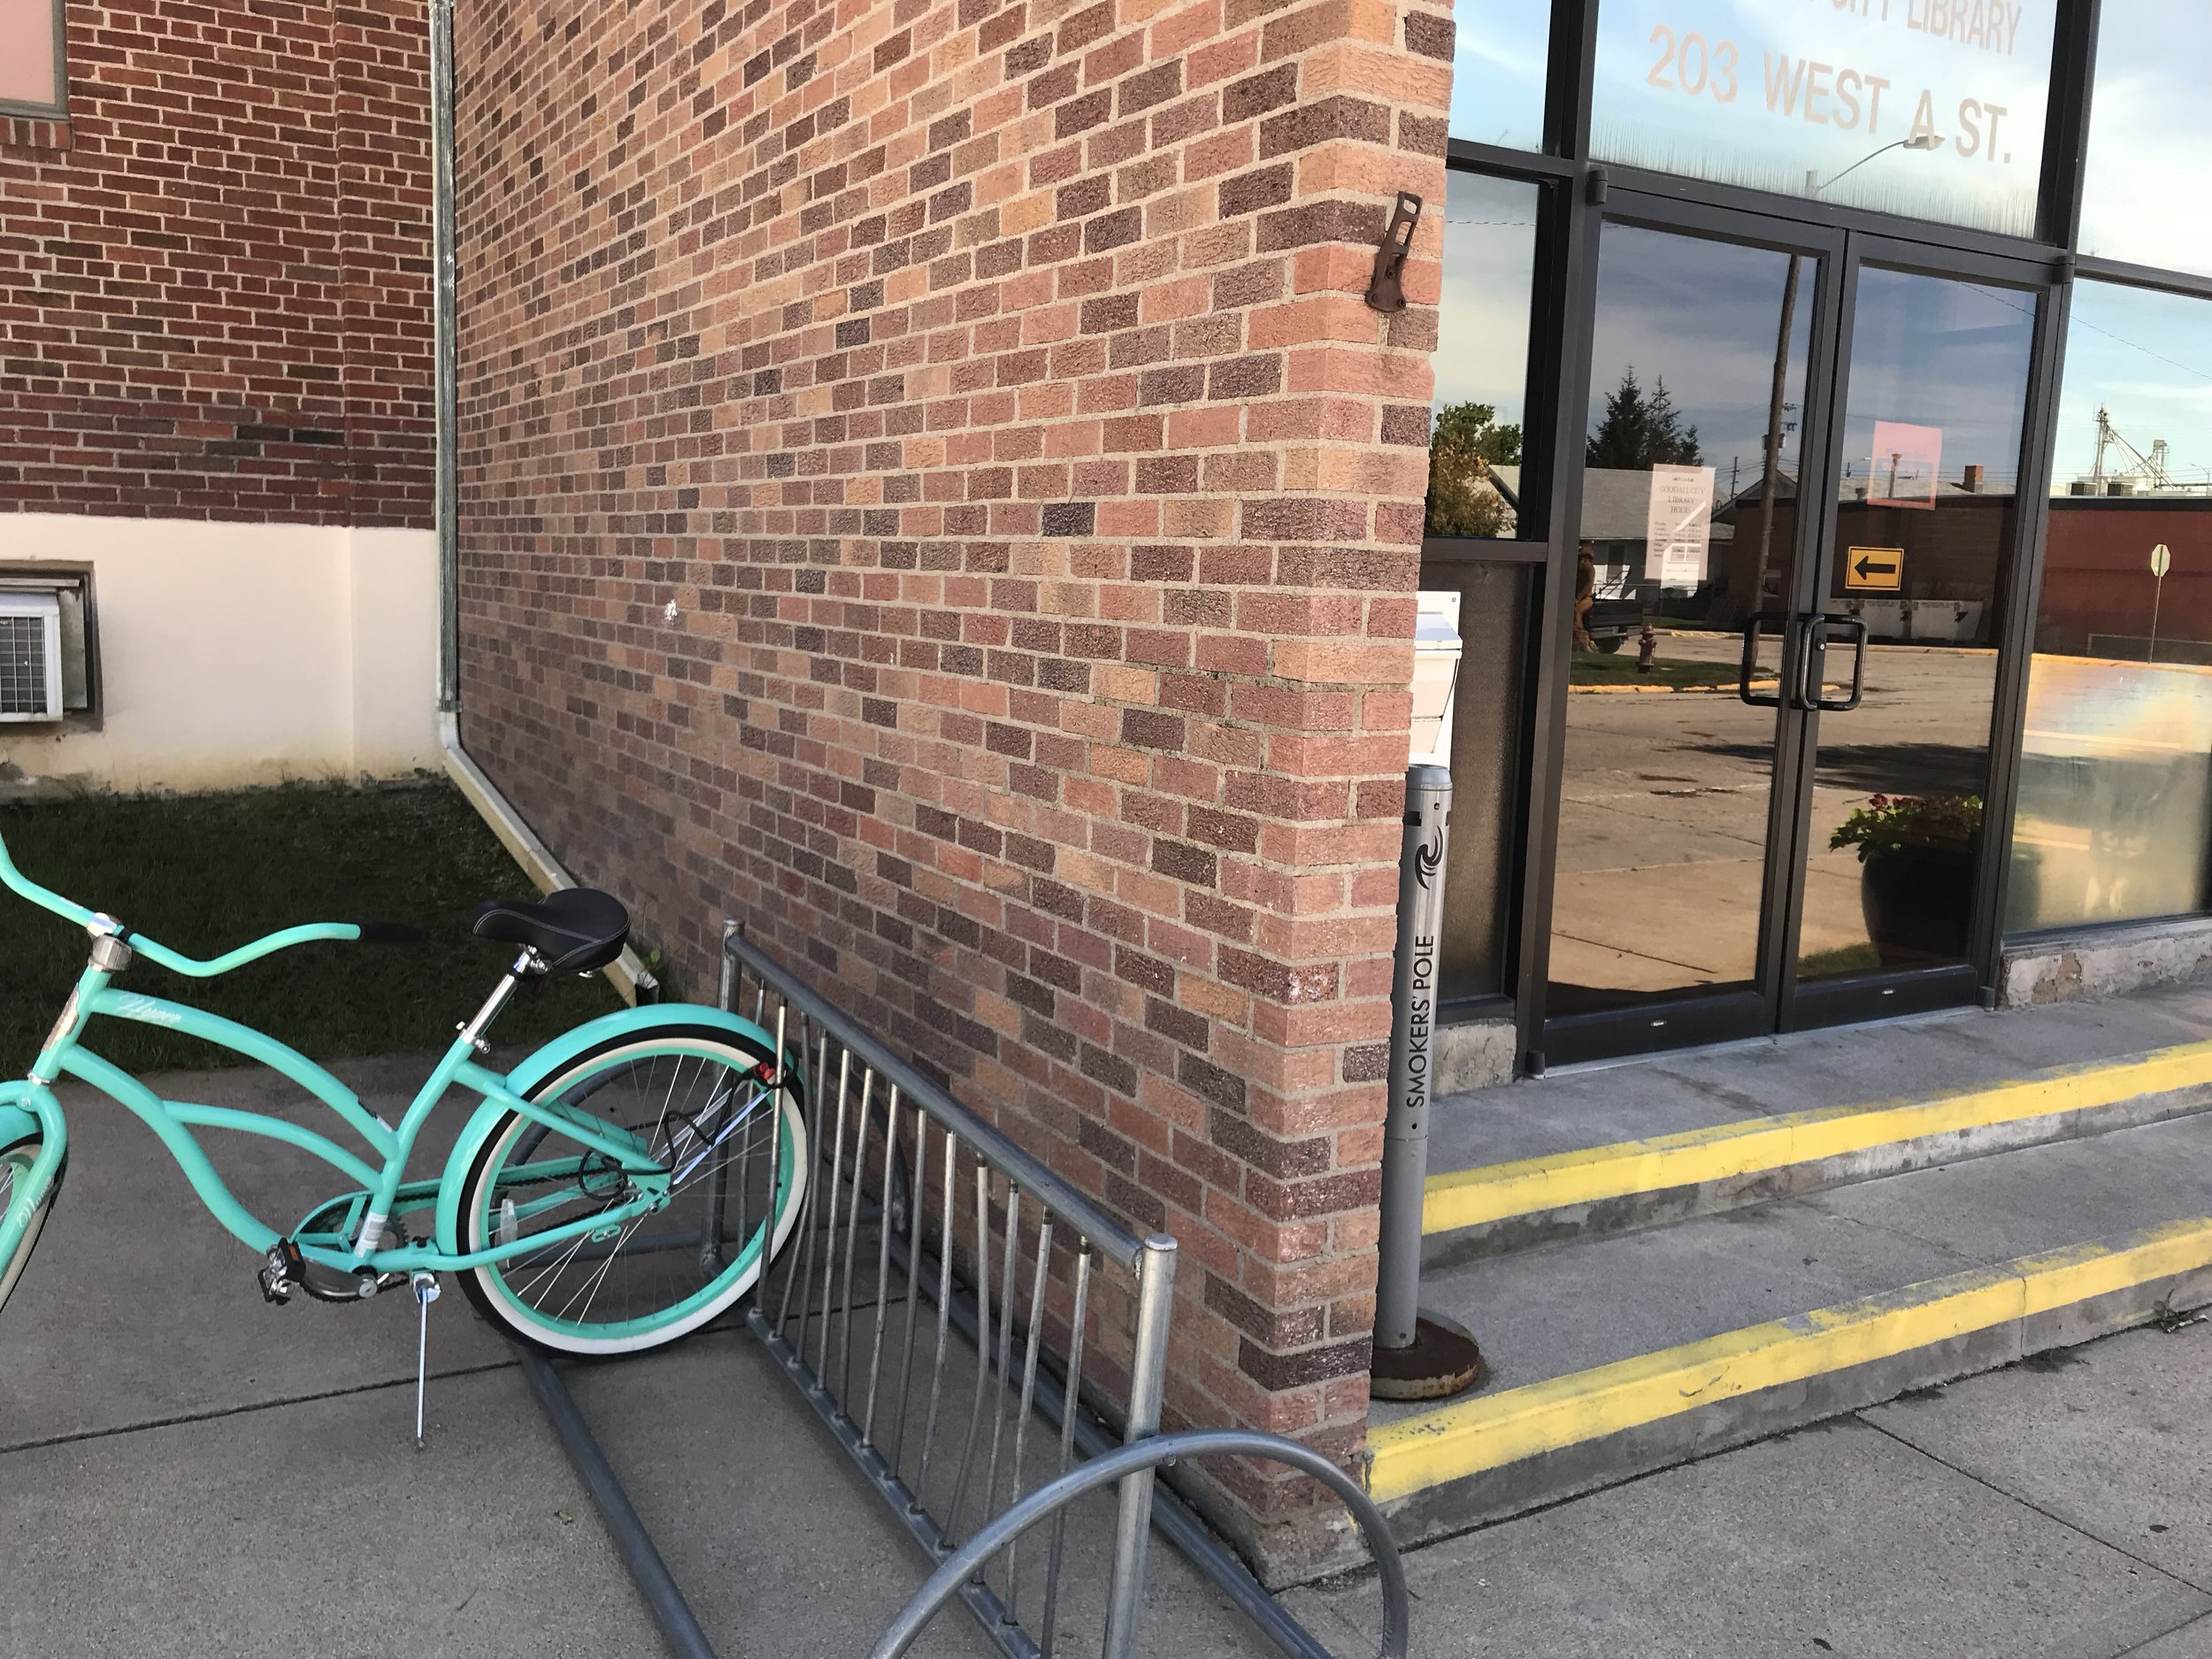 Gotta love this turquoise bike parked at the entrance to Ogallala's public library.